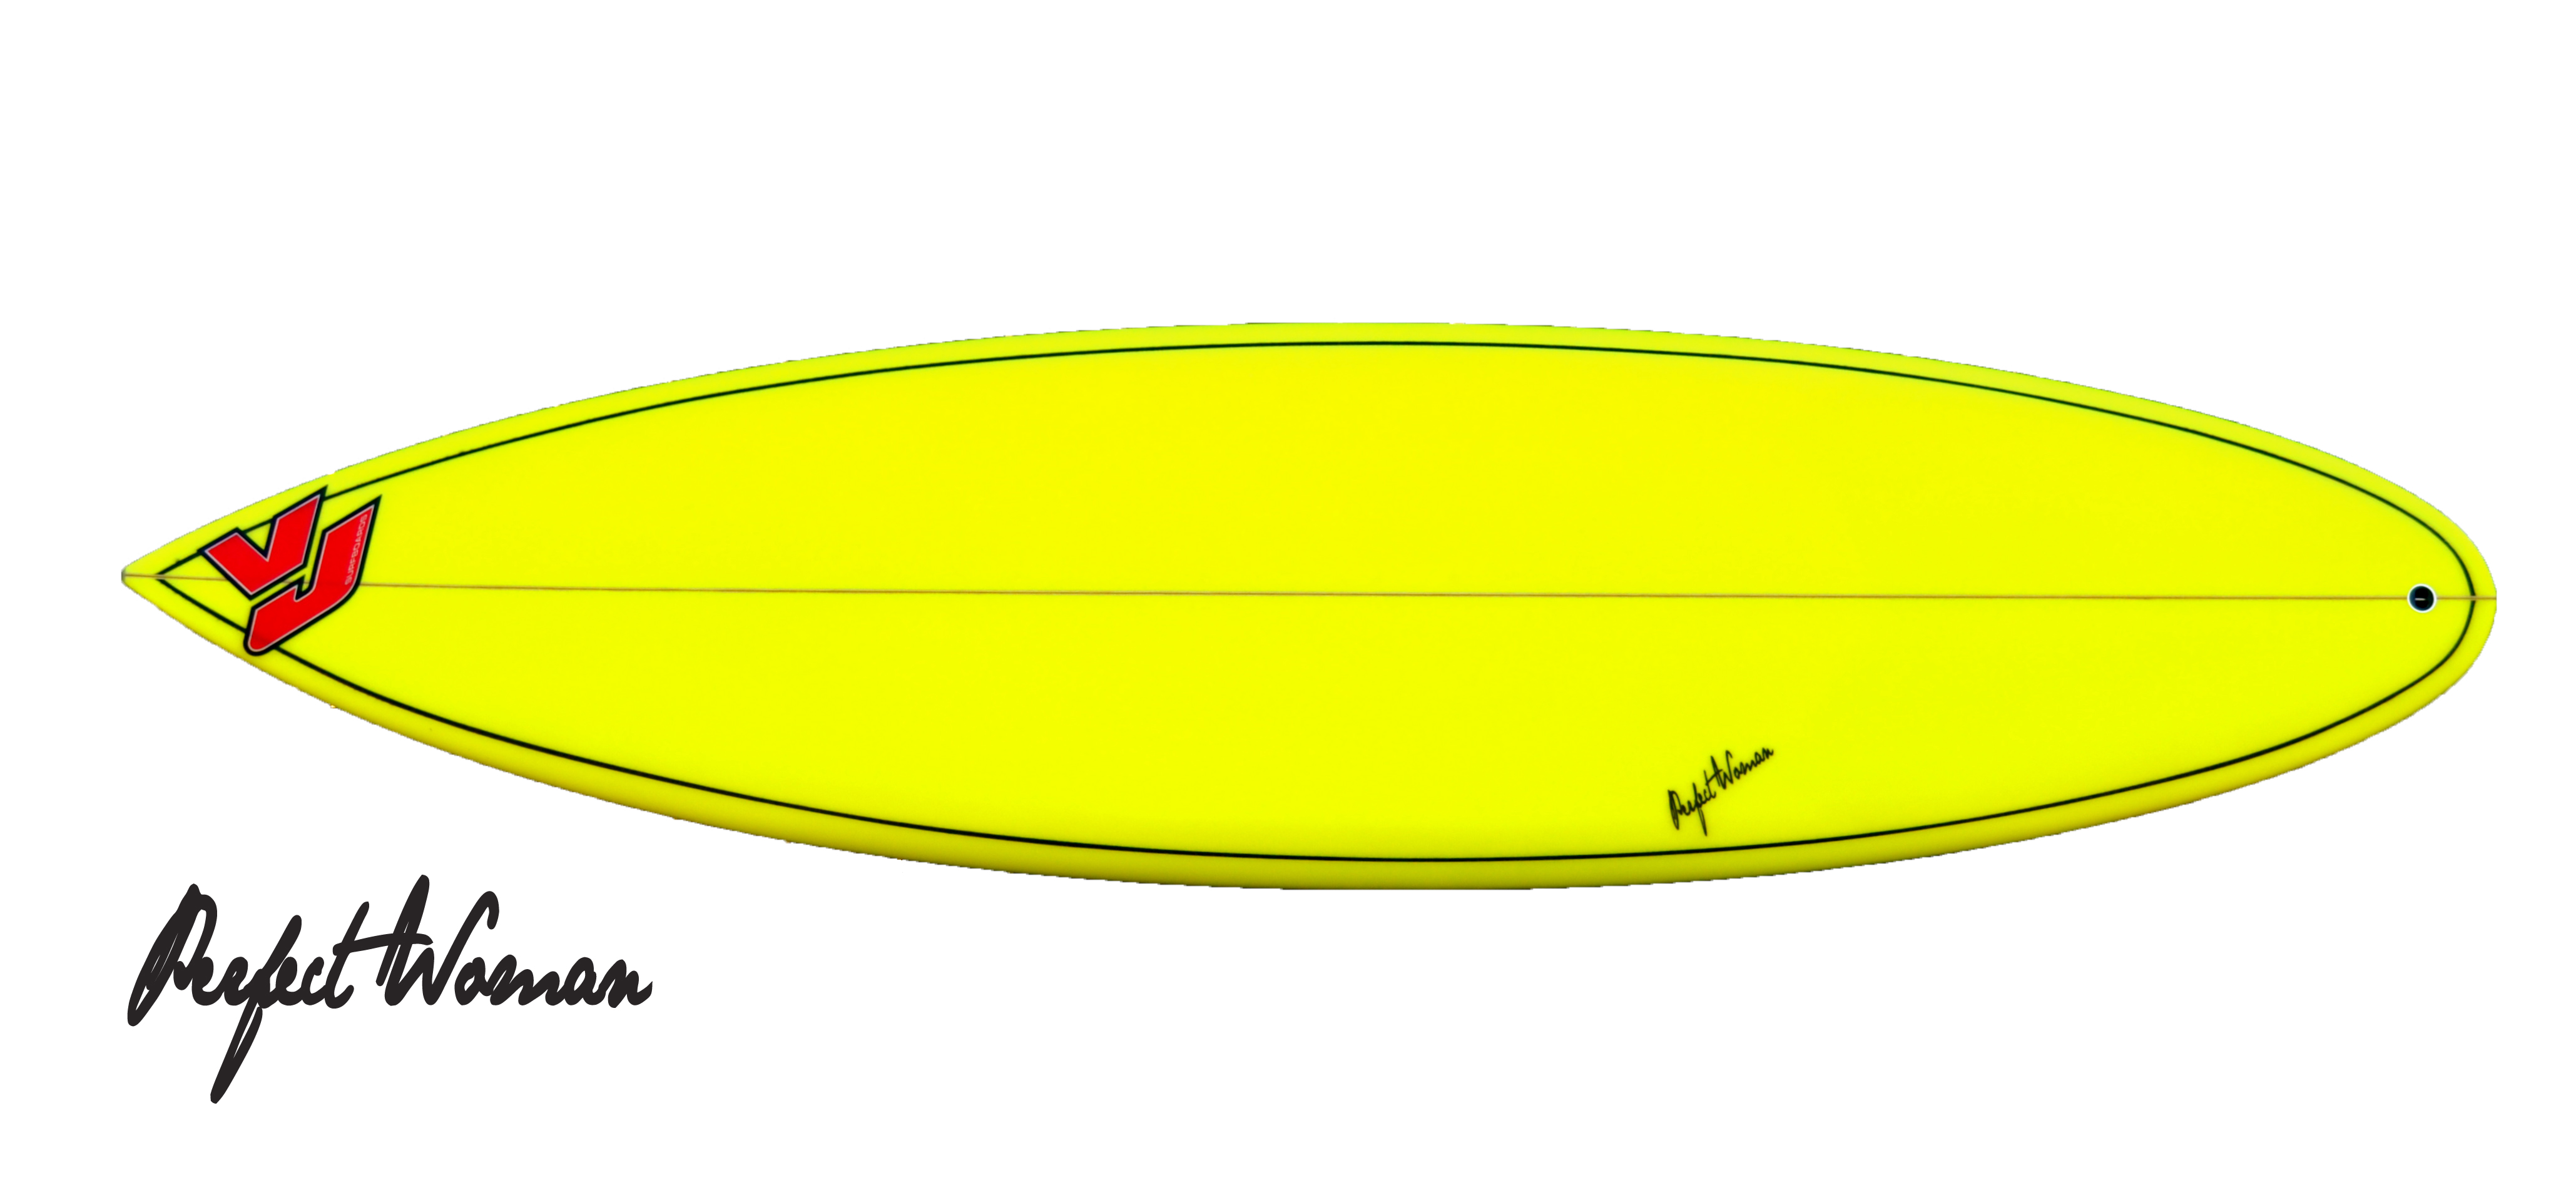 Perfect-Woman-Surfboard